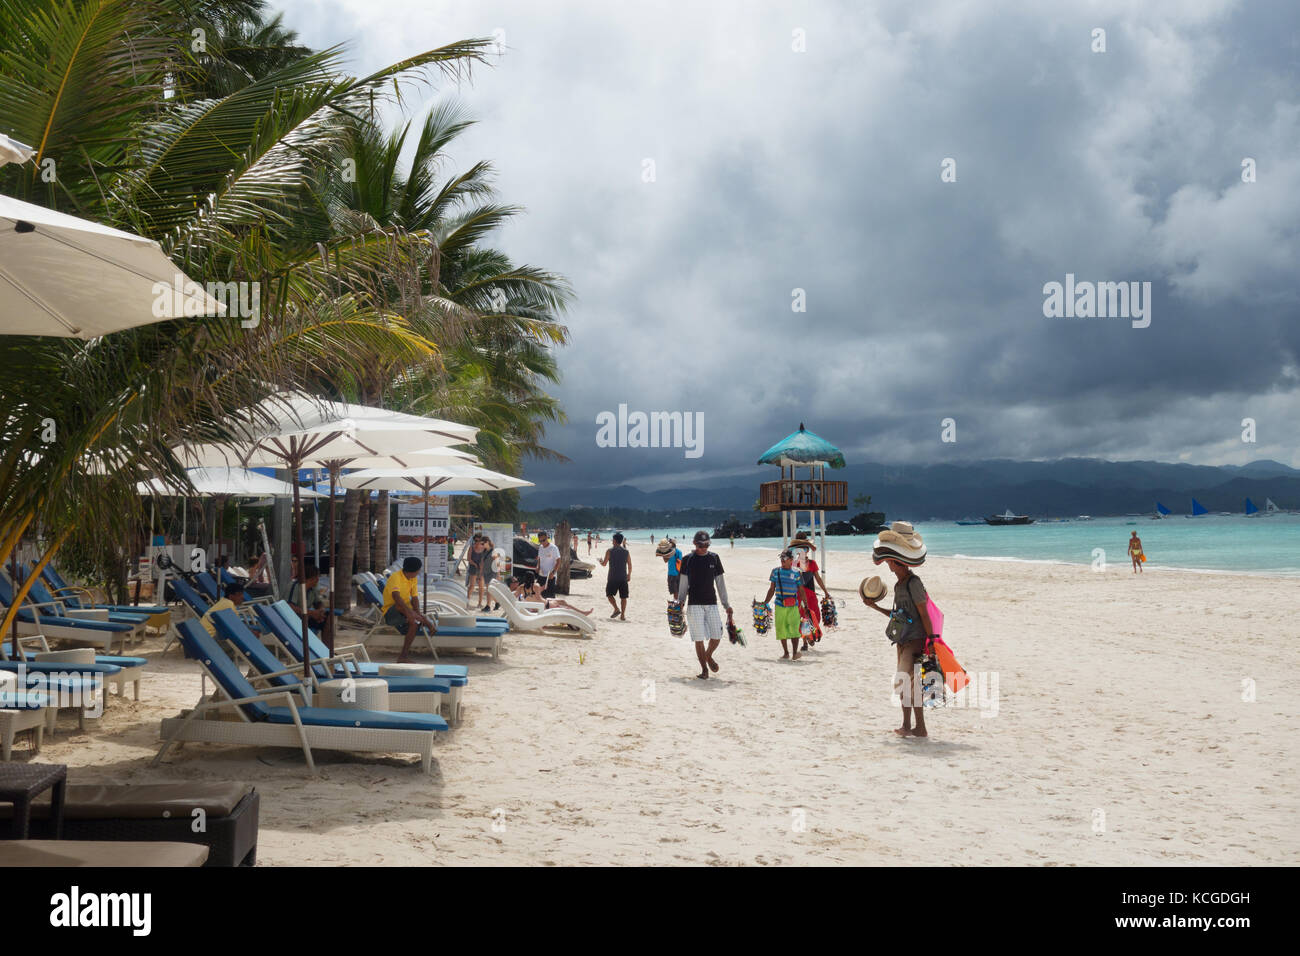 White Beach Boracay, Philippines - local sellers on the white sand beach, White Beach, Boracay Island, Philippines, - Stock Image